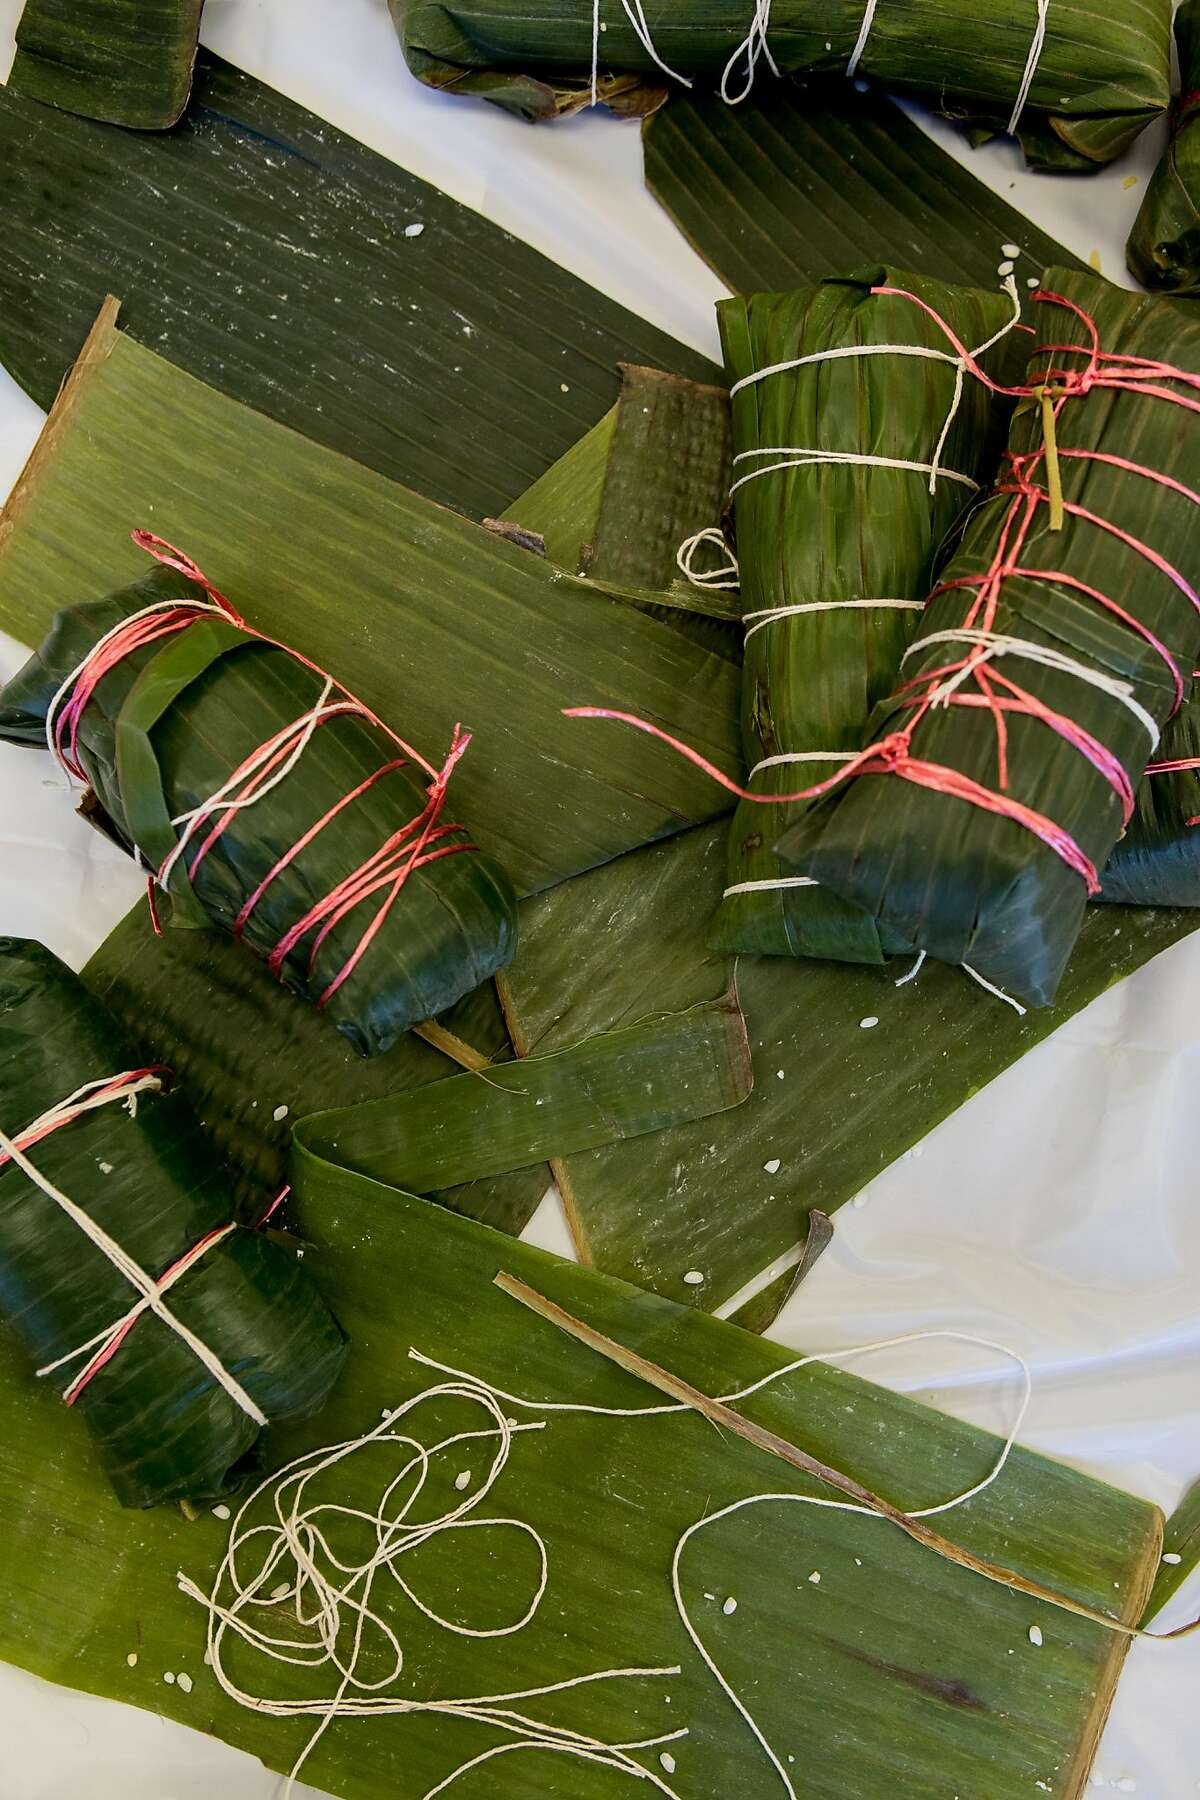 Elders are experts in tying b�nh t�t, a parcel of sticky rice, mung beans, and sweet yams wrapped in banana leaves in San Jose on February 8, 2020.